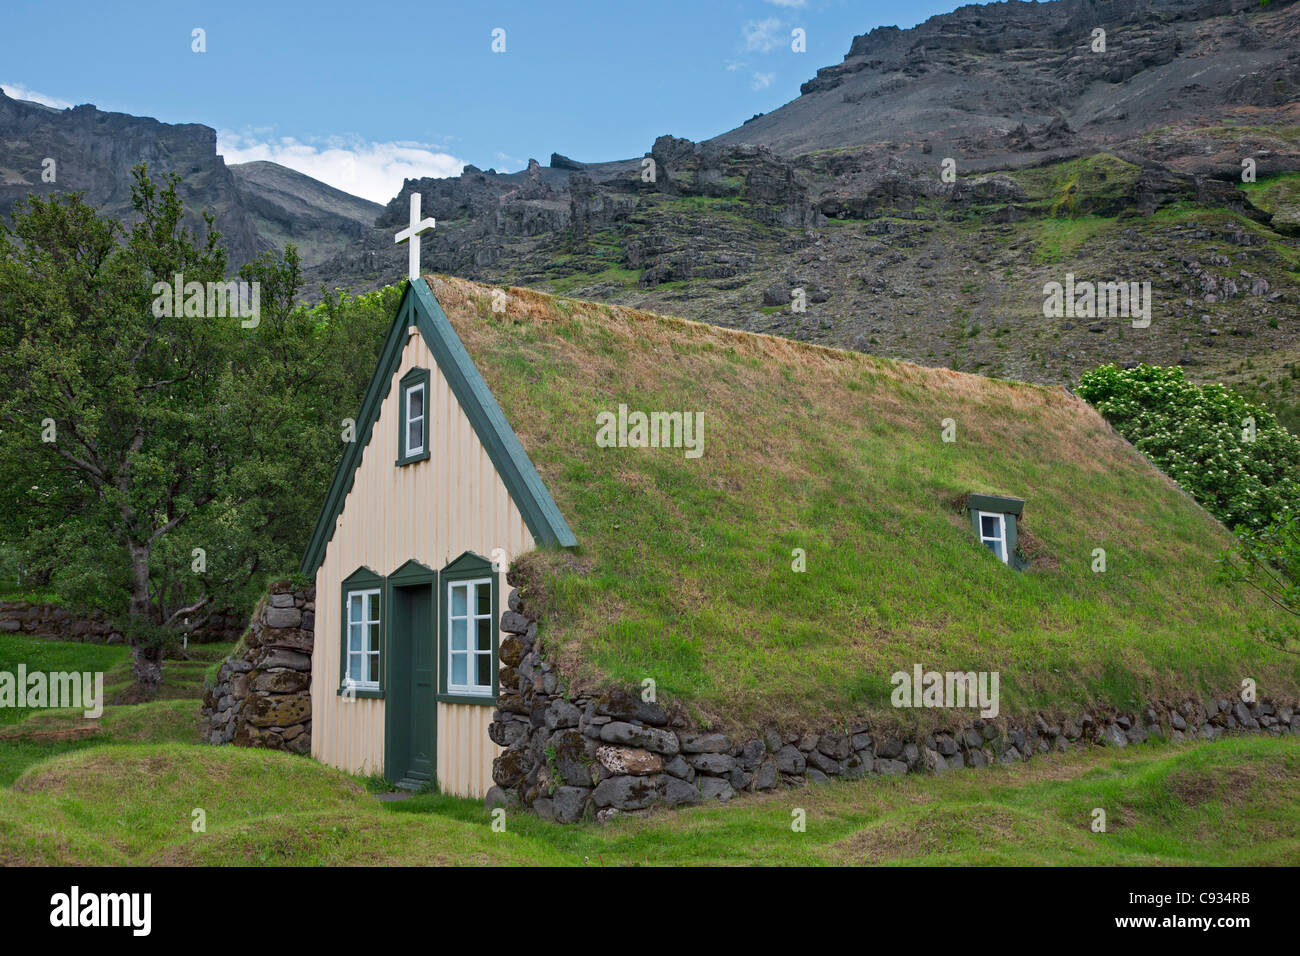 The old wood-and-peat, turf-roofed church of Hofskirkja was built in 1884. - Stock Image